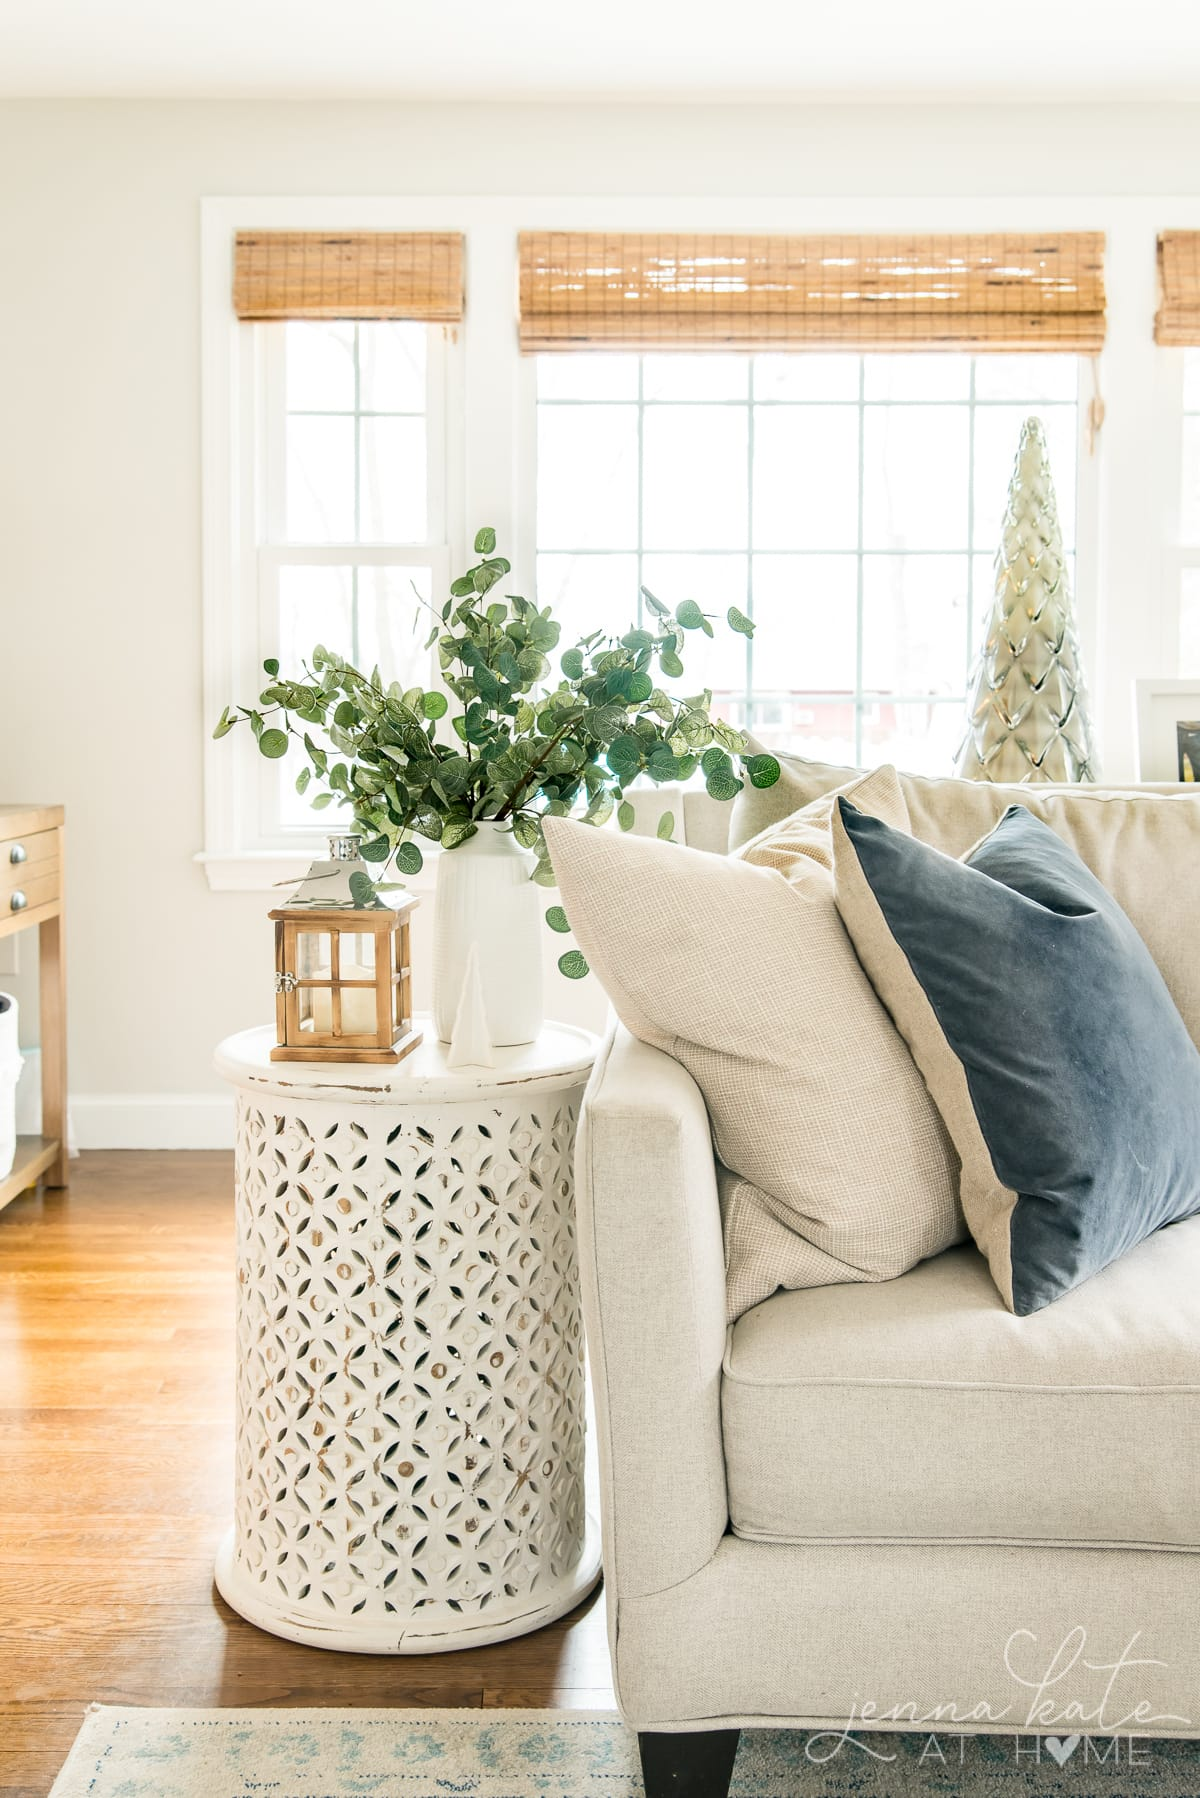 View of the couch with a  blue throw pillow and a side table with eucalyptus